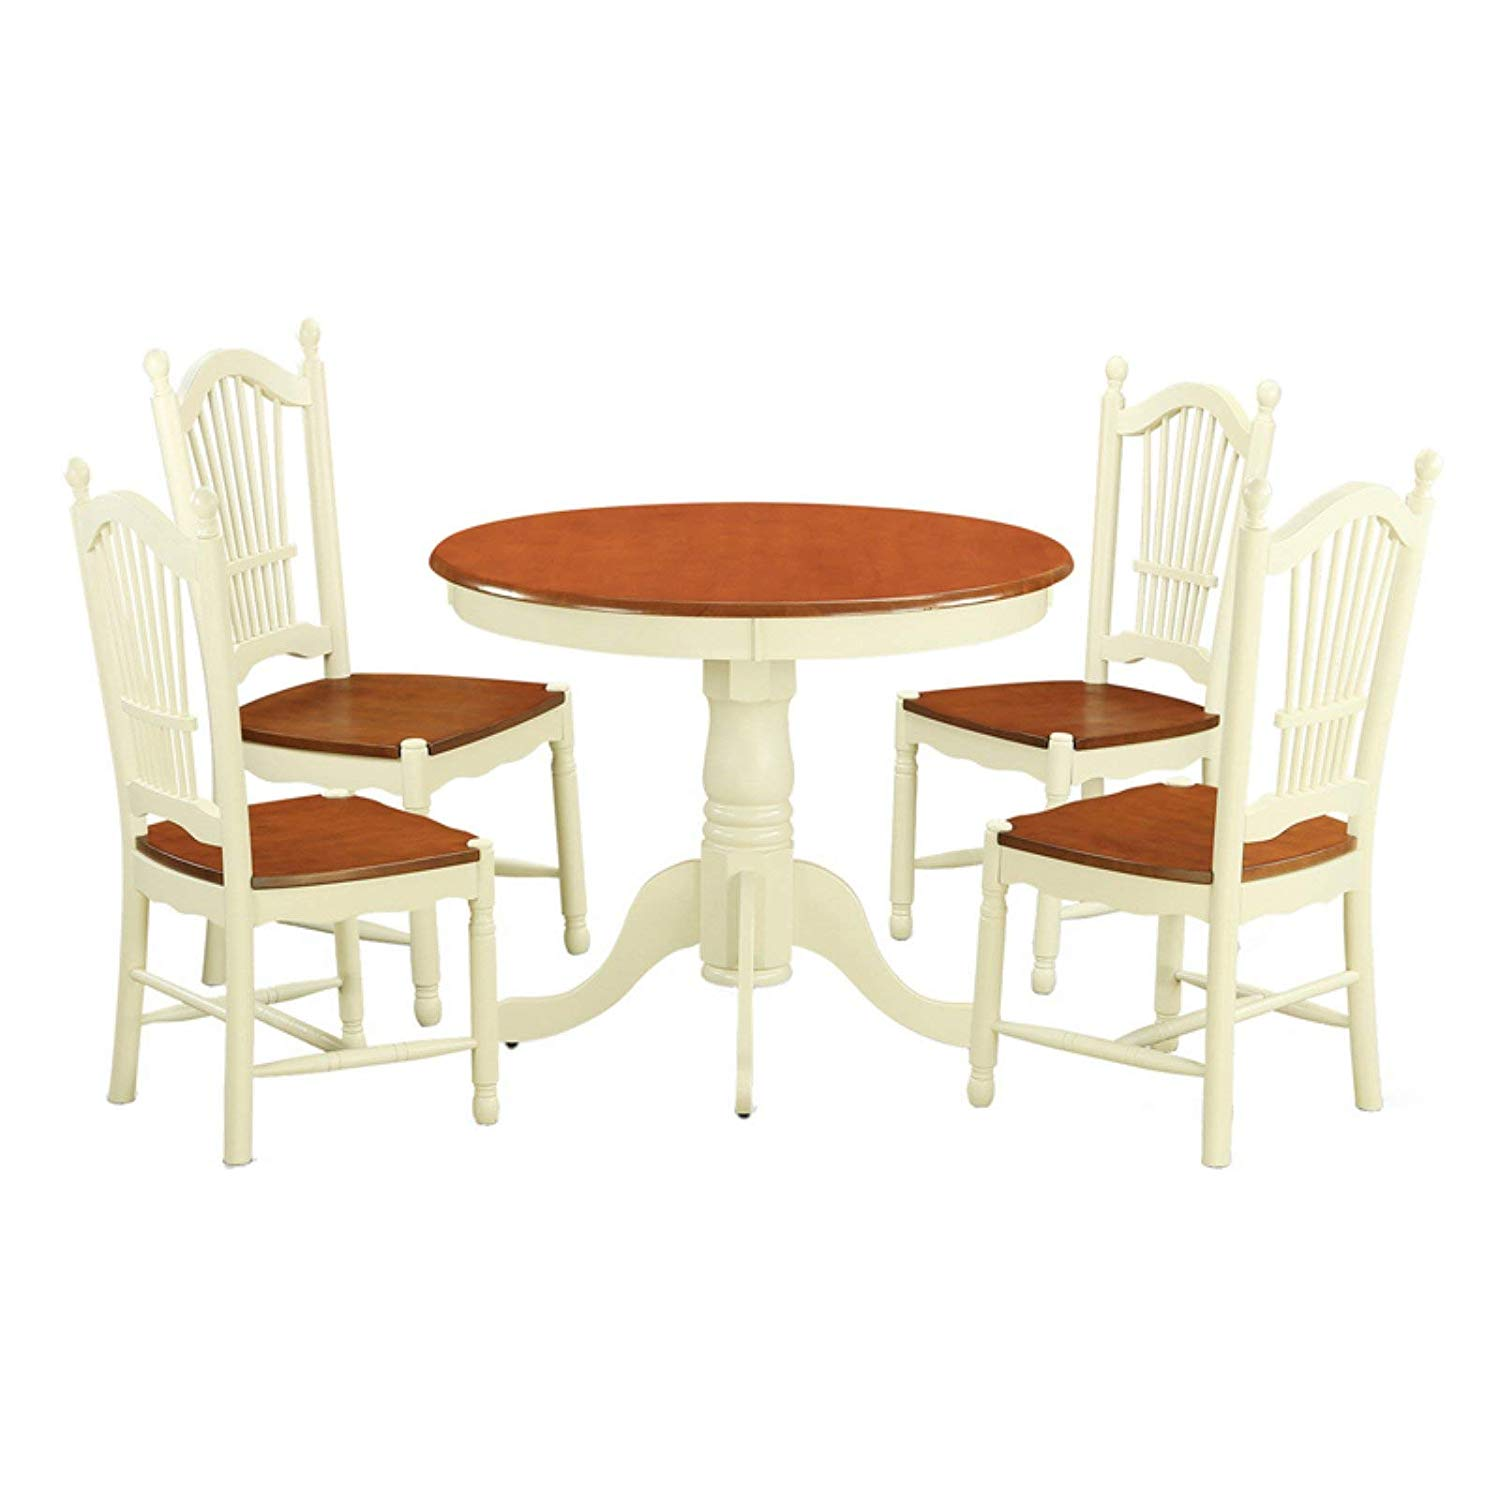 5 Piece Round Dining Table Set with Wooden Seat Chairs, Buttermilk/Cherry Finish, Sleekly Structured, Sturdy Pedestal Base, Solid Asian Hardwood, Chic and Elegant, Sturdy and Durable + Expert Guide